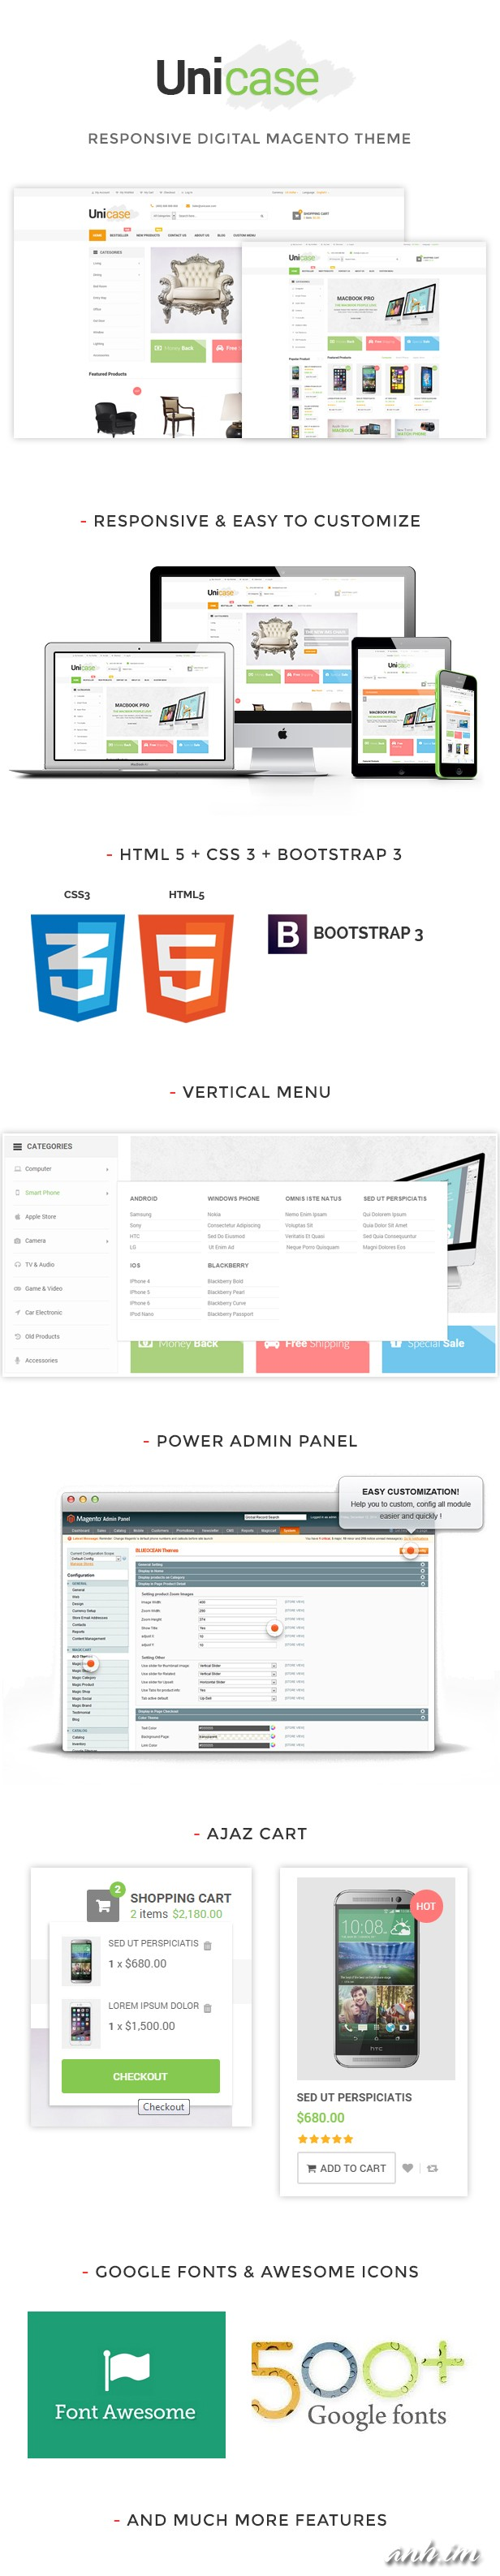 Unicase - Responsive Digital Magento Theme